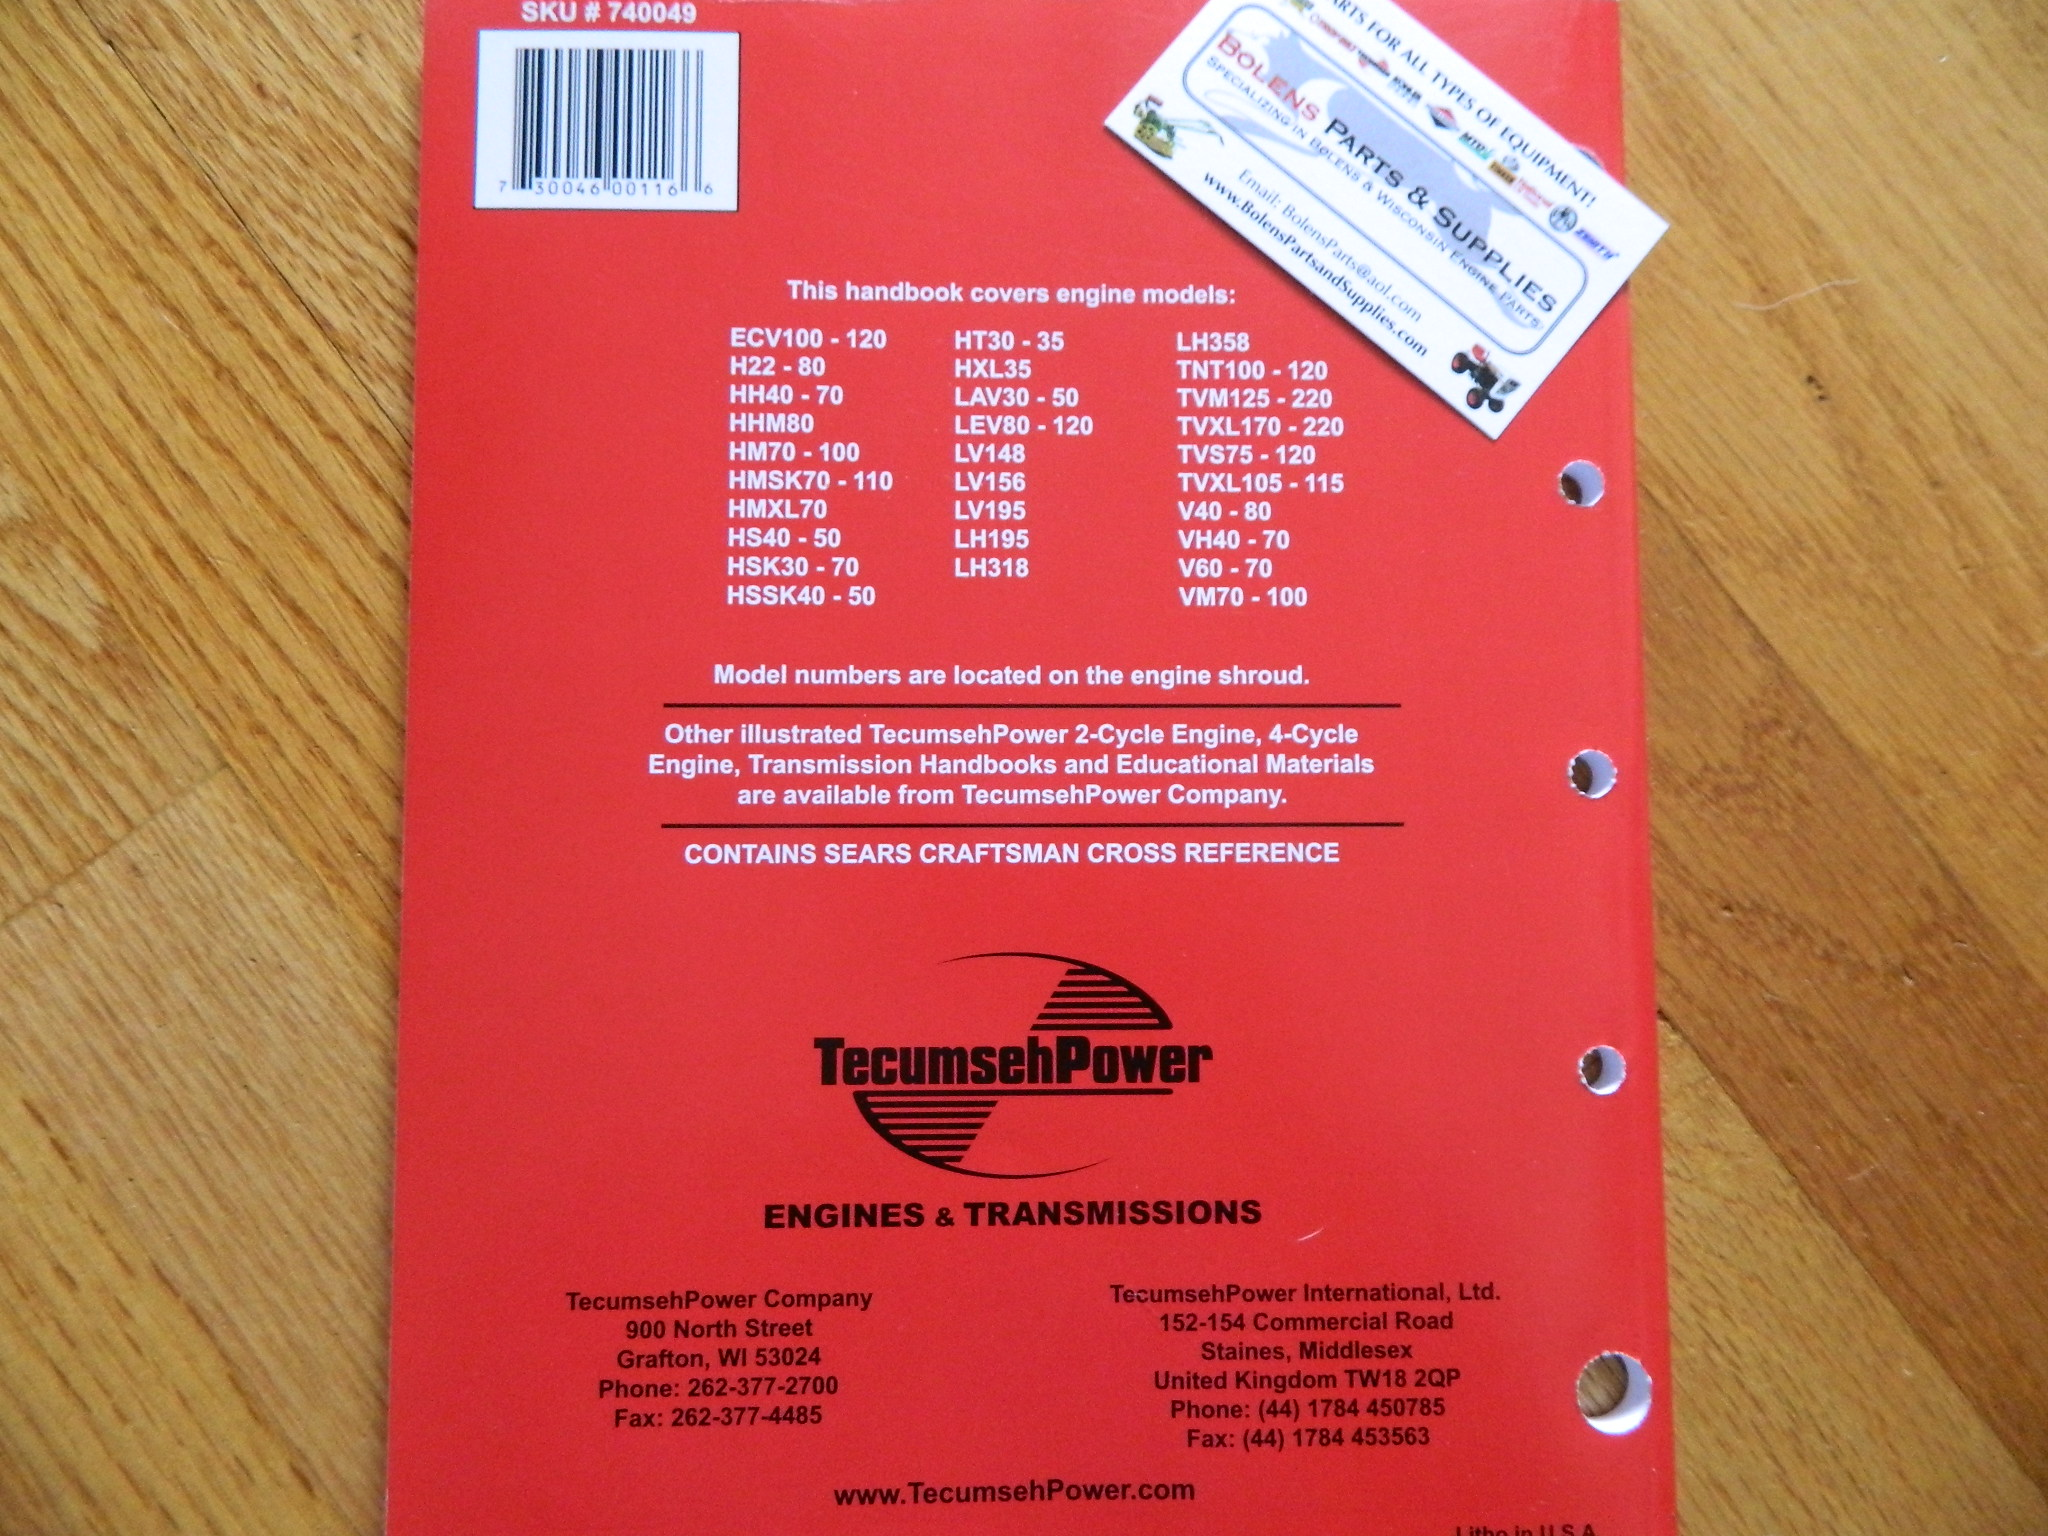 NEW Tecumseh engine 4cycle L head Repair service manual 3-11HP  mowers,tillers   692509 740049